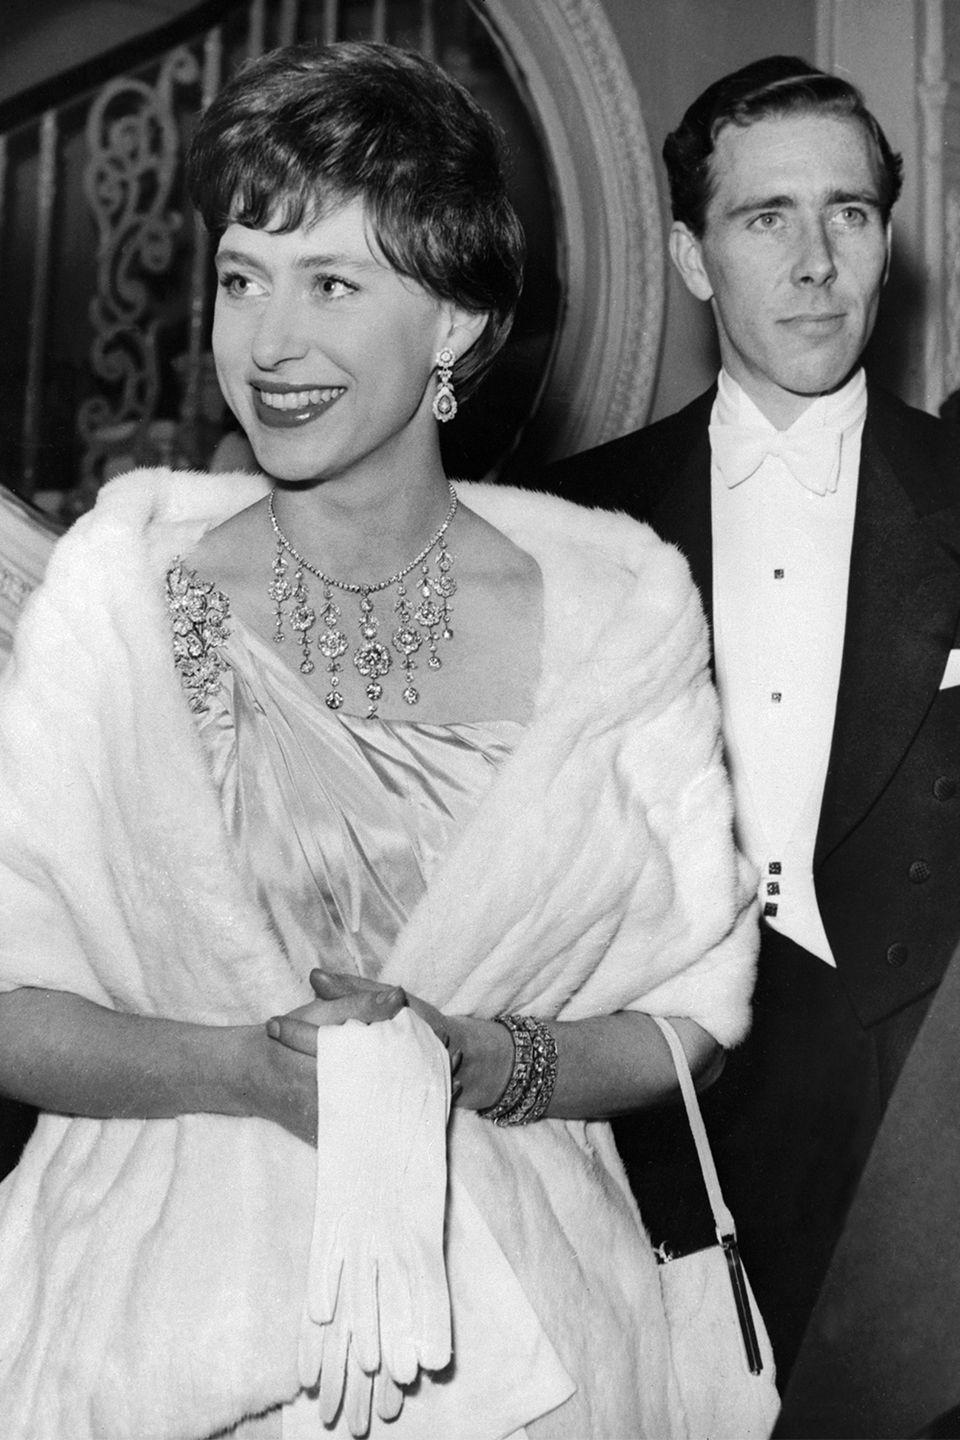 <p>Here's Princess Margaret at the Opera House in London wearing an elegant gown and white and fur wrap. This is the same year she married Anthony Armstrong-Jones (pictured behind her). </p>